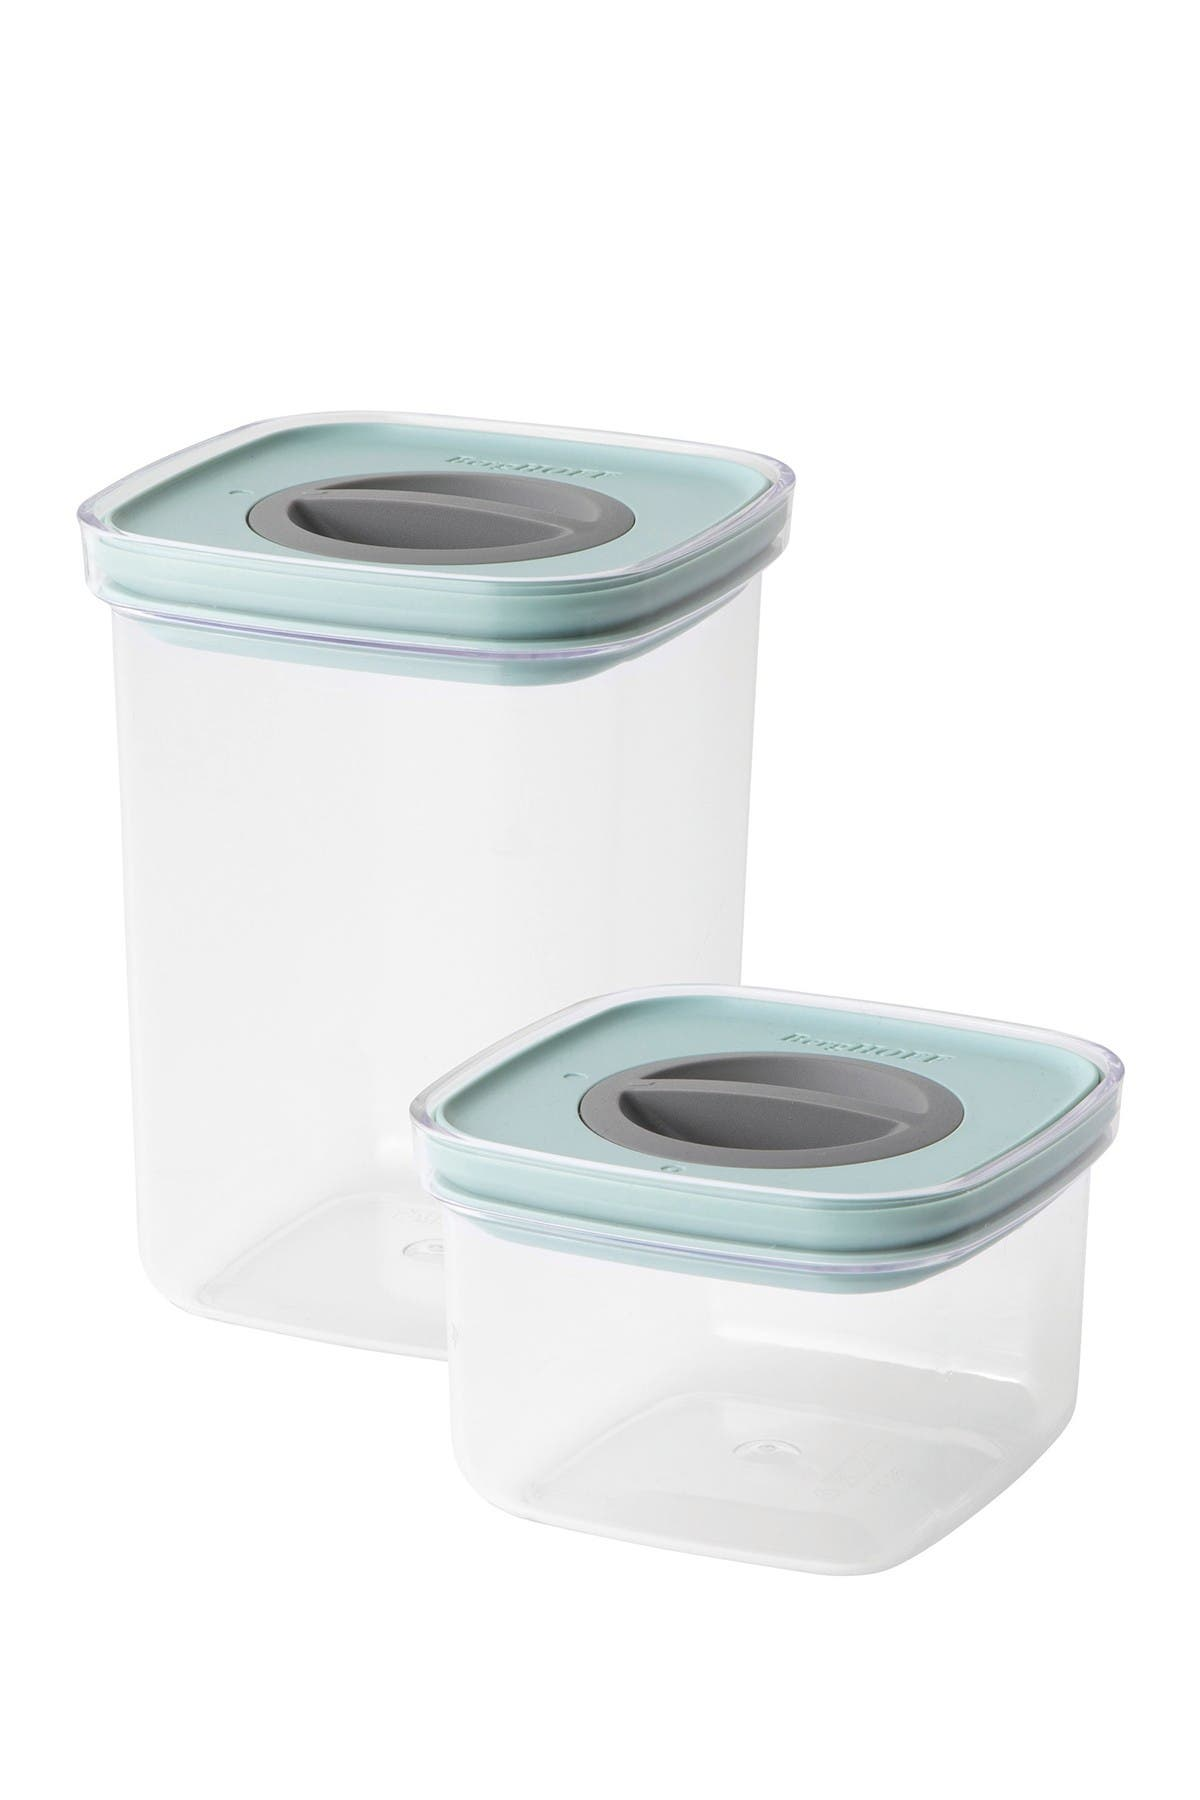 Image of BergHOFF Green Leo 2-Piece Smart Seal Food Container Set